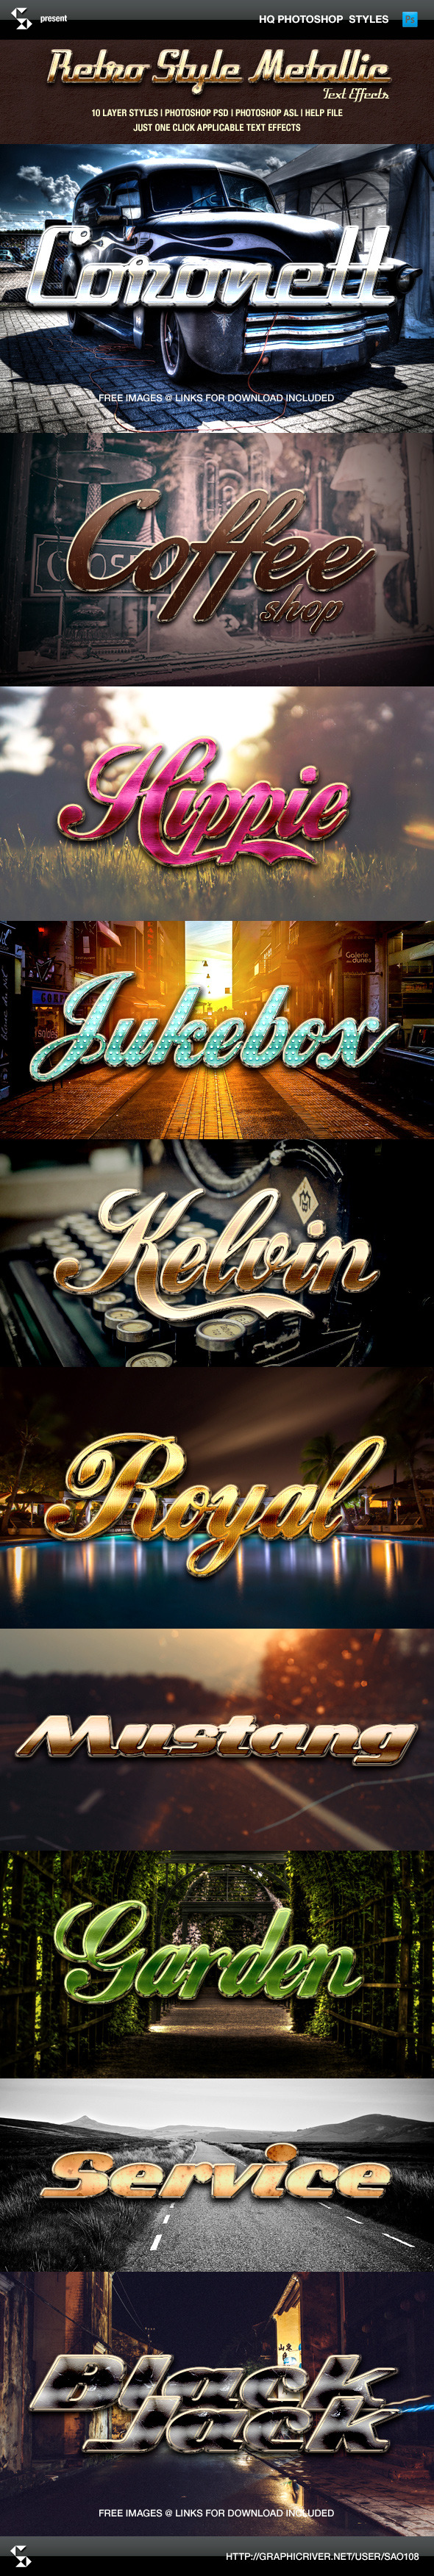 GraphicRiver Retro Style Metallic Text Effects 9382781